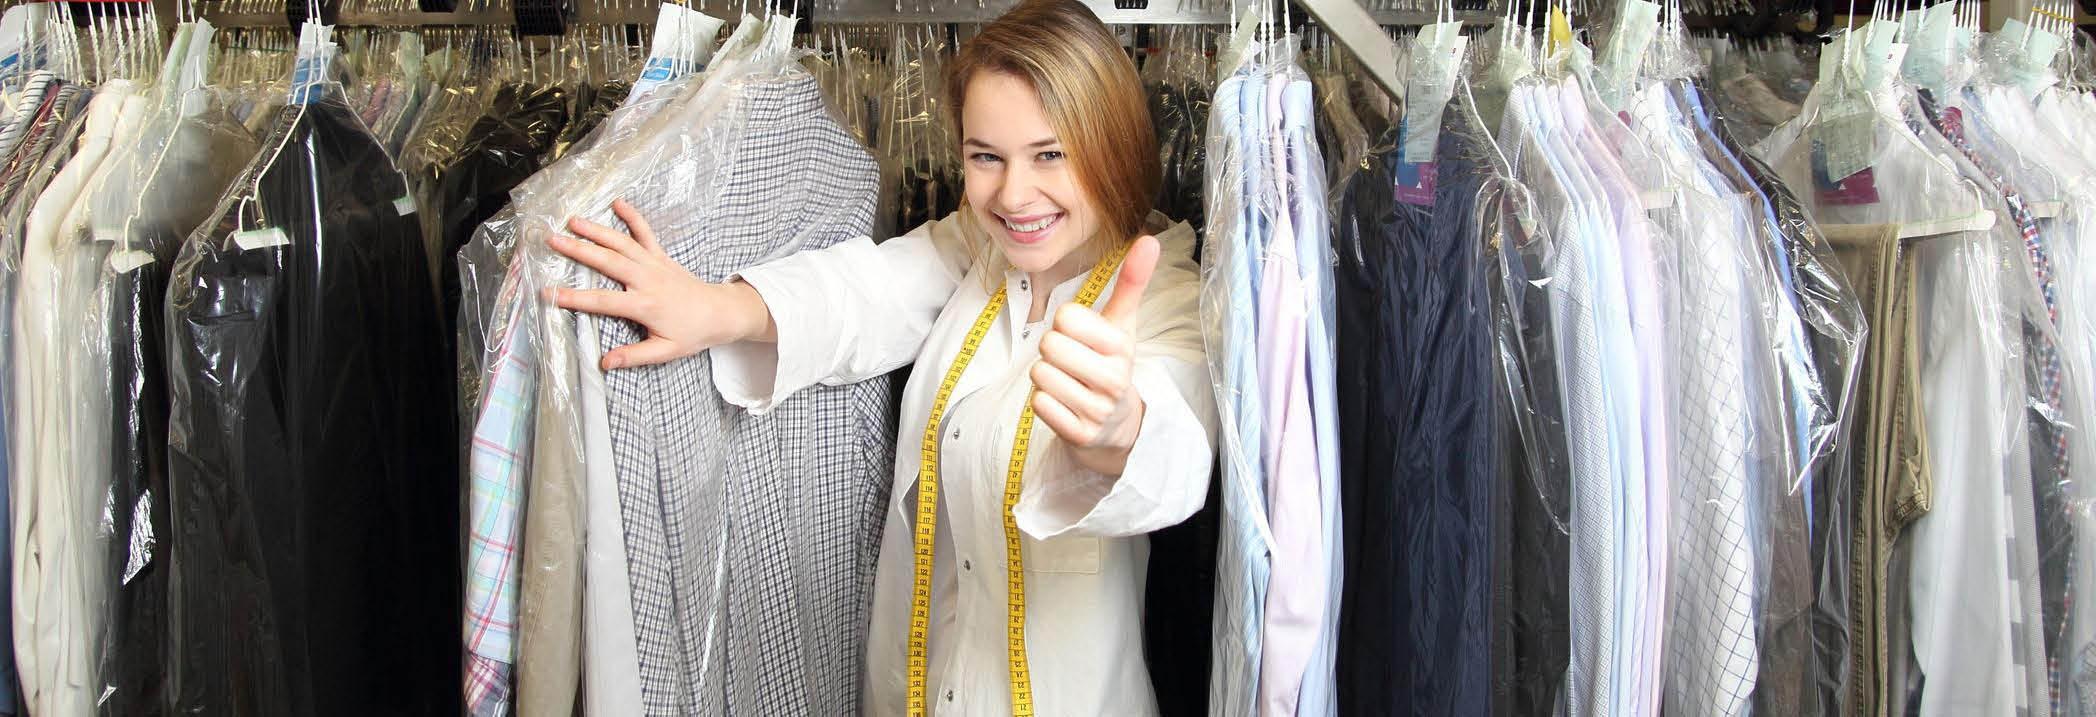 Woman in cleaned clothes with tape measure around her neck